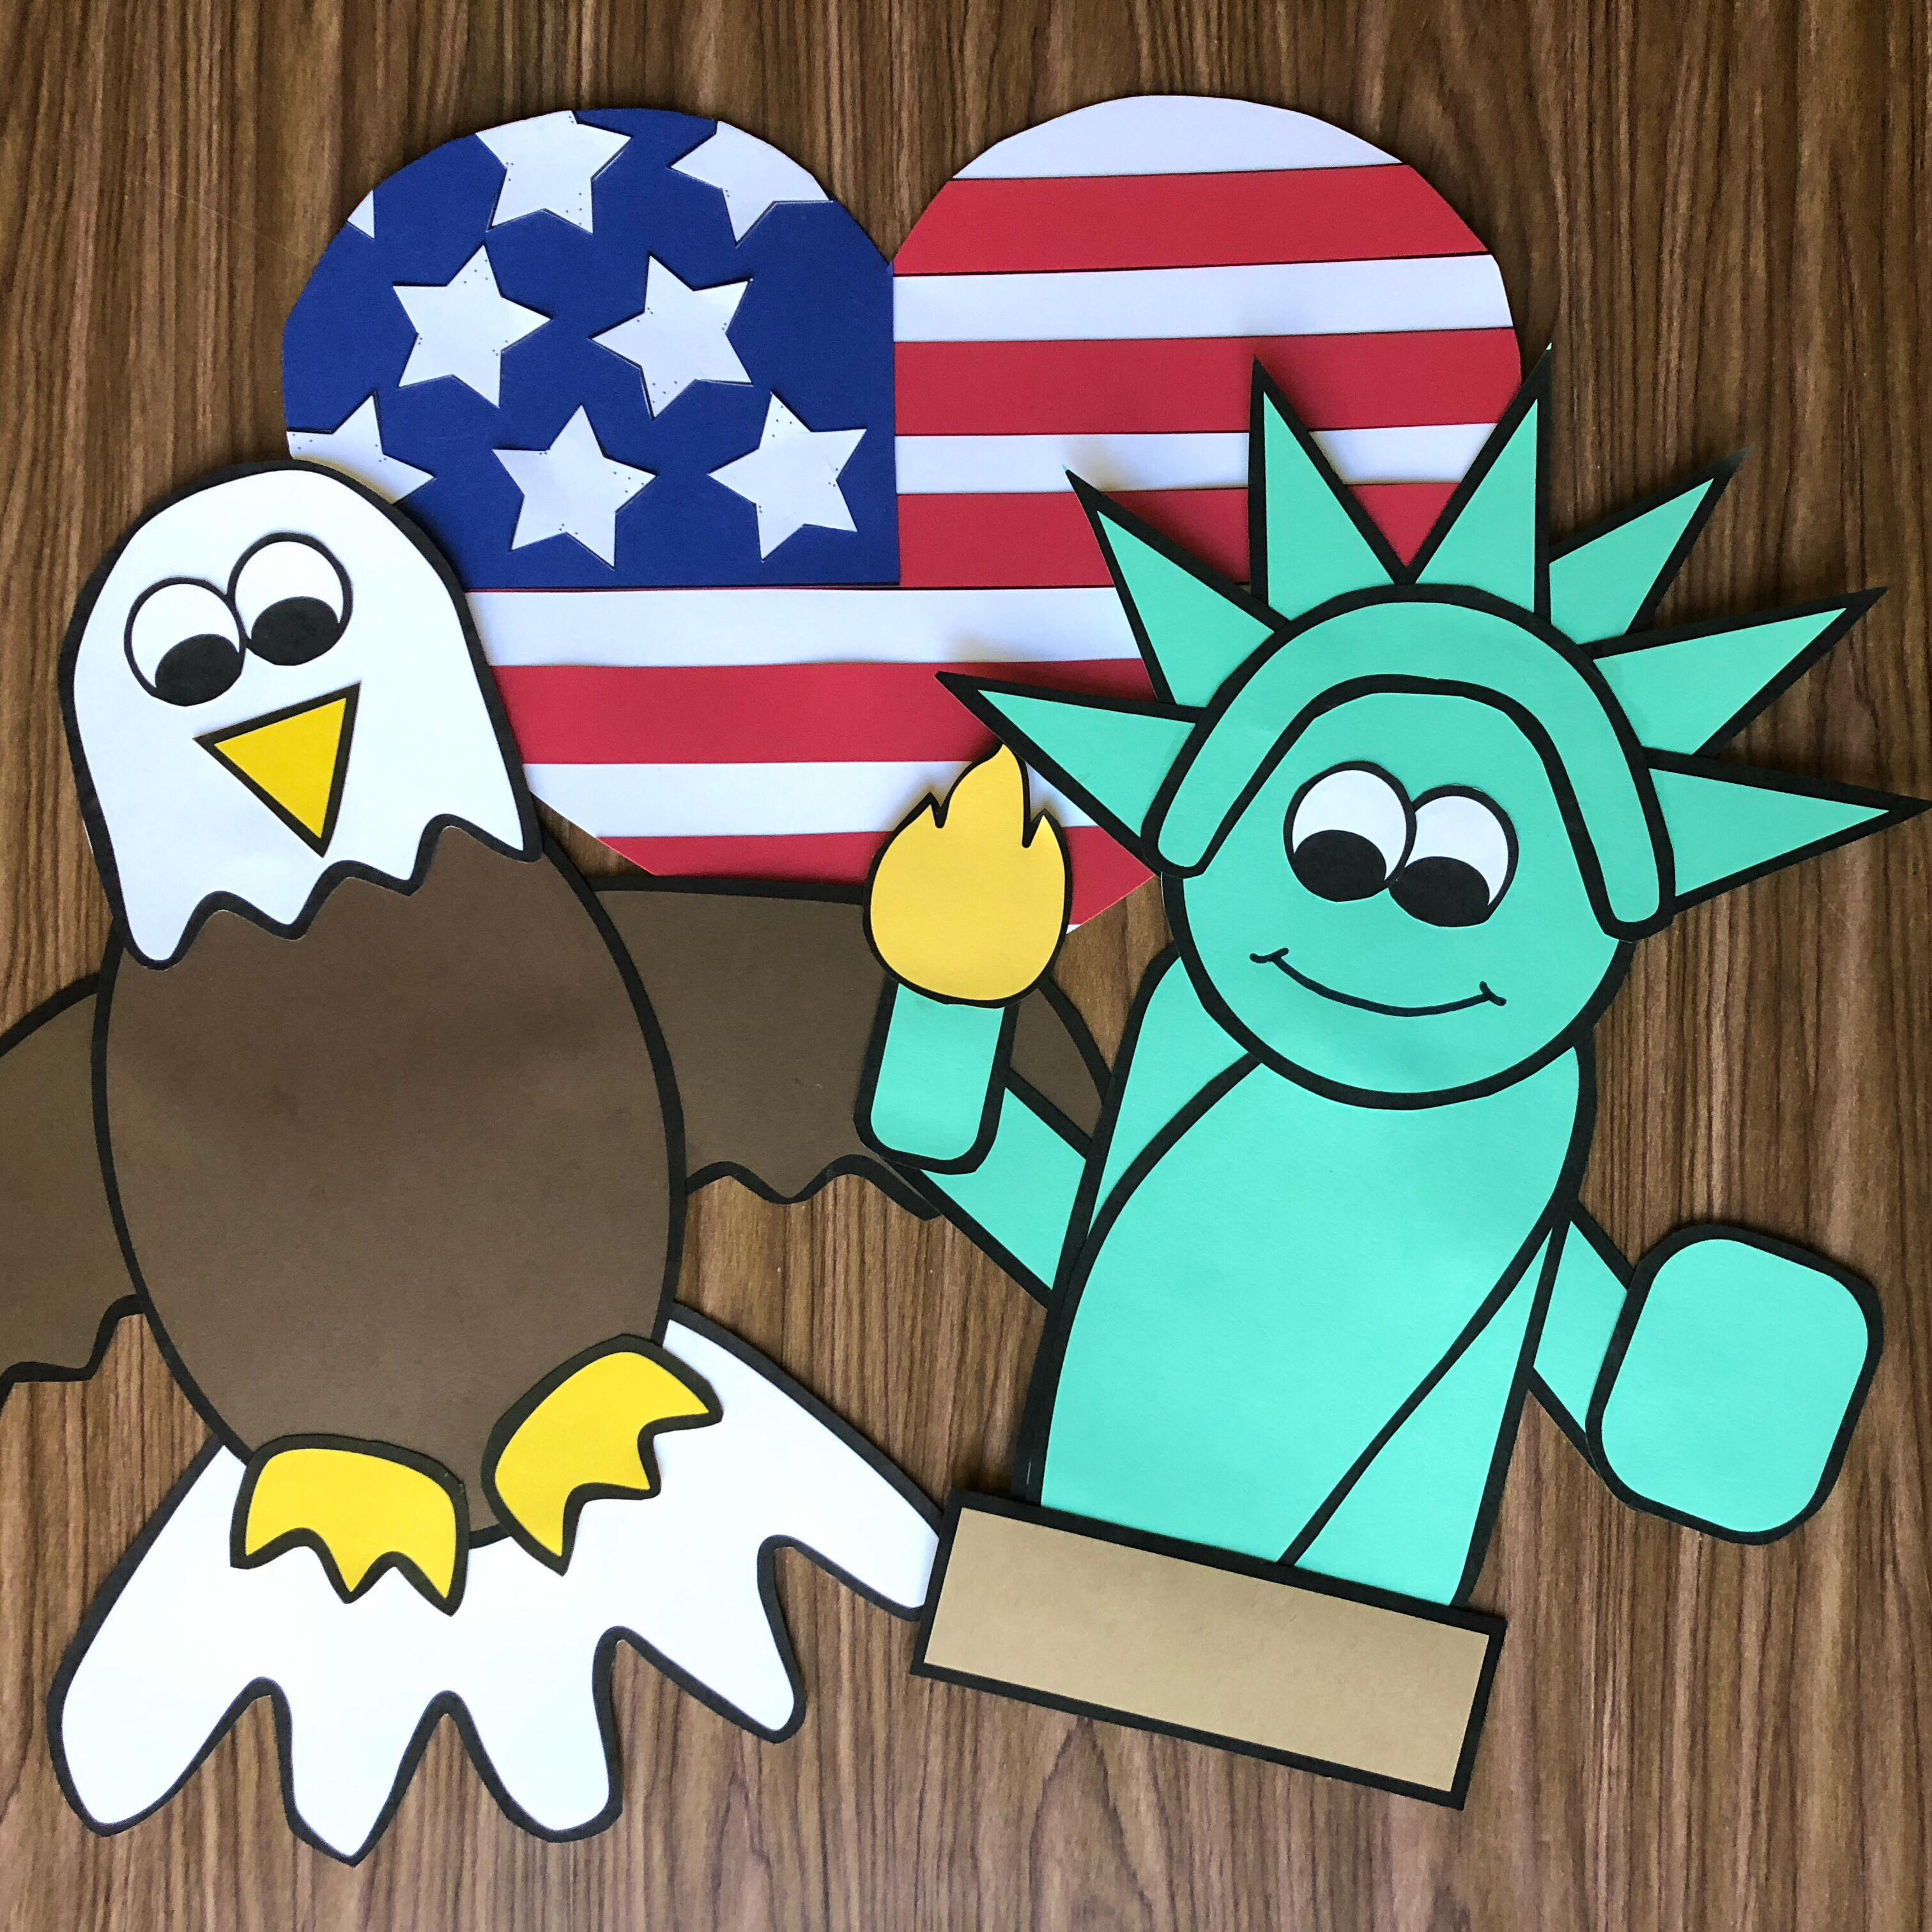 America Crafts - Fun and easy to assemble crafts all about America!